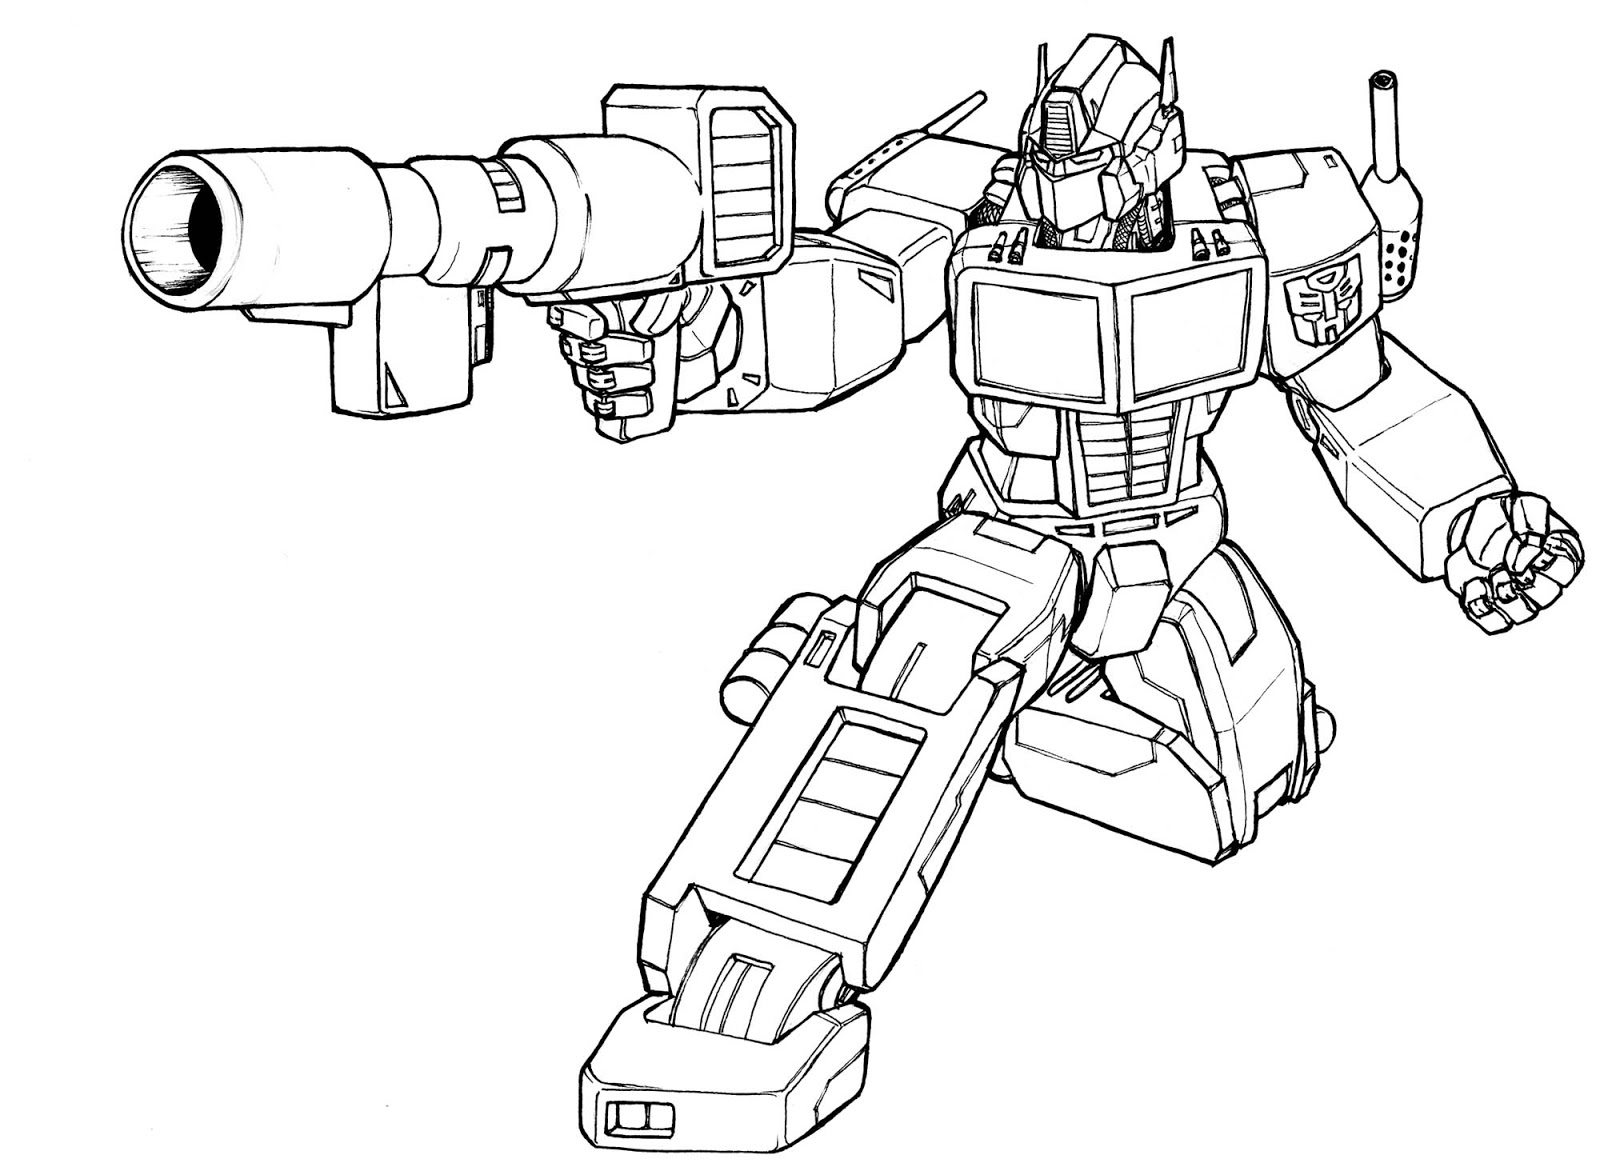 coloring transformers free easy to print transformers coloring pages tulamama transformers coloring